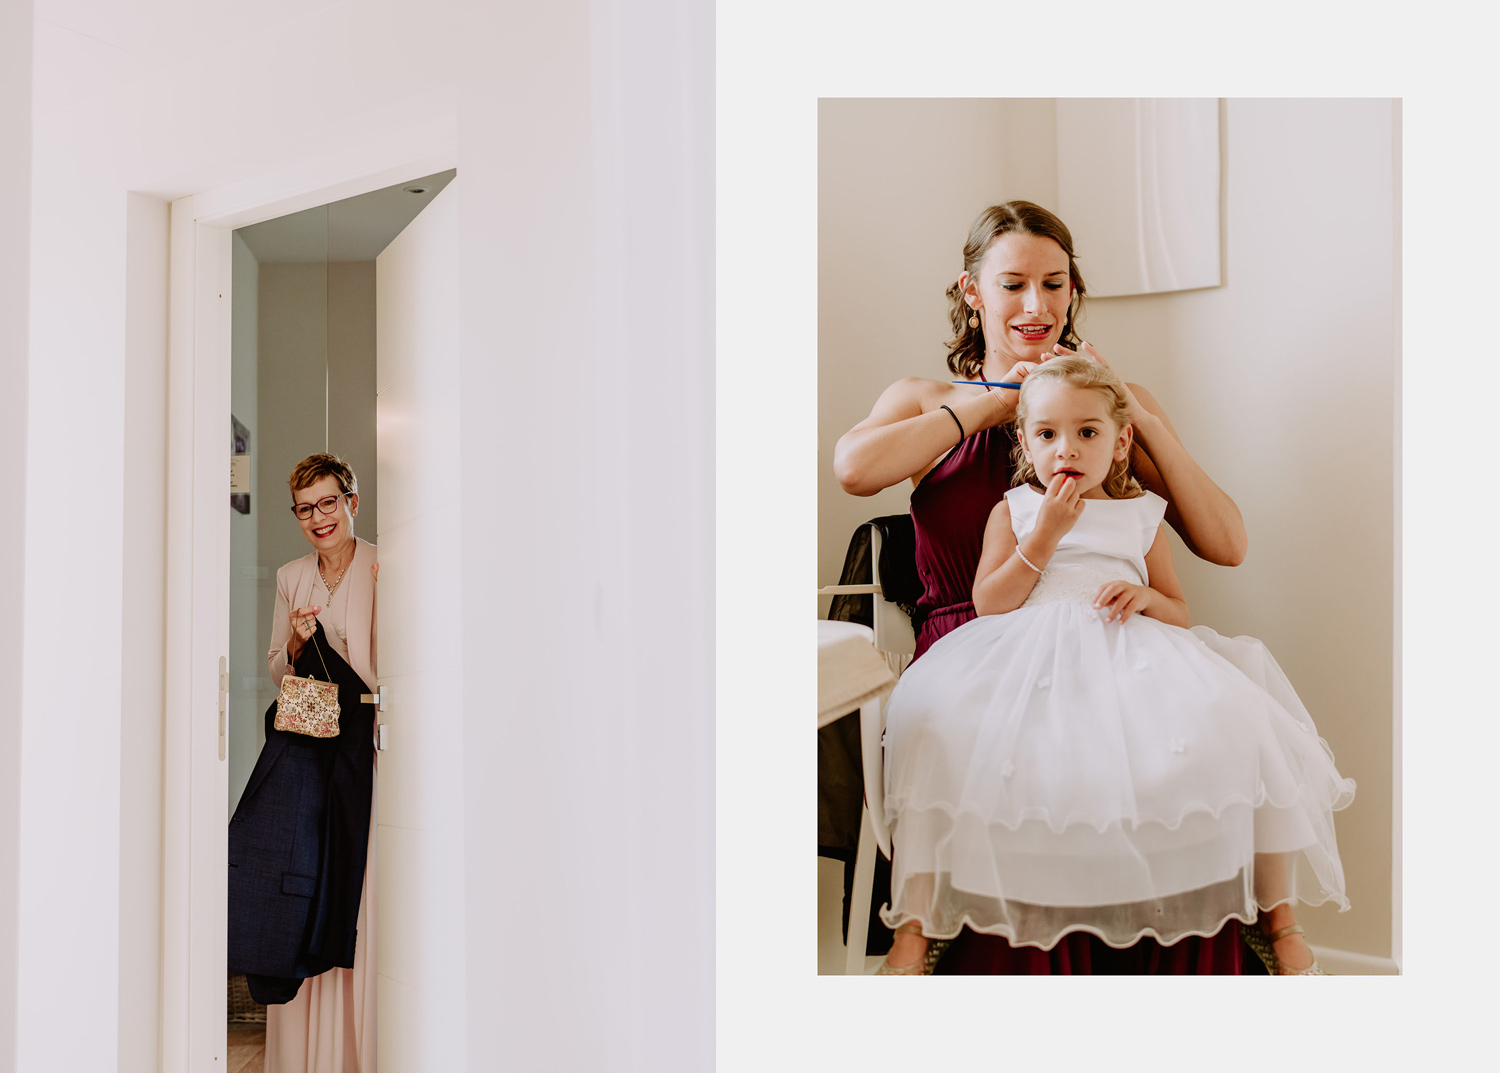 Umbria wedding photographer bridesmaids with bride get ready